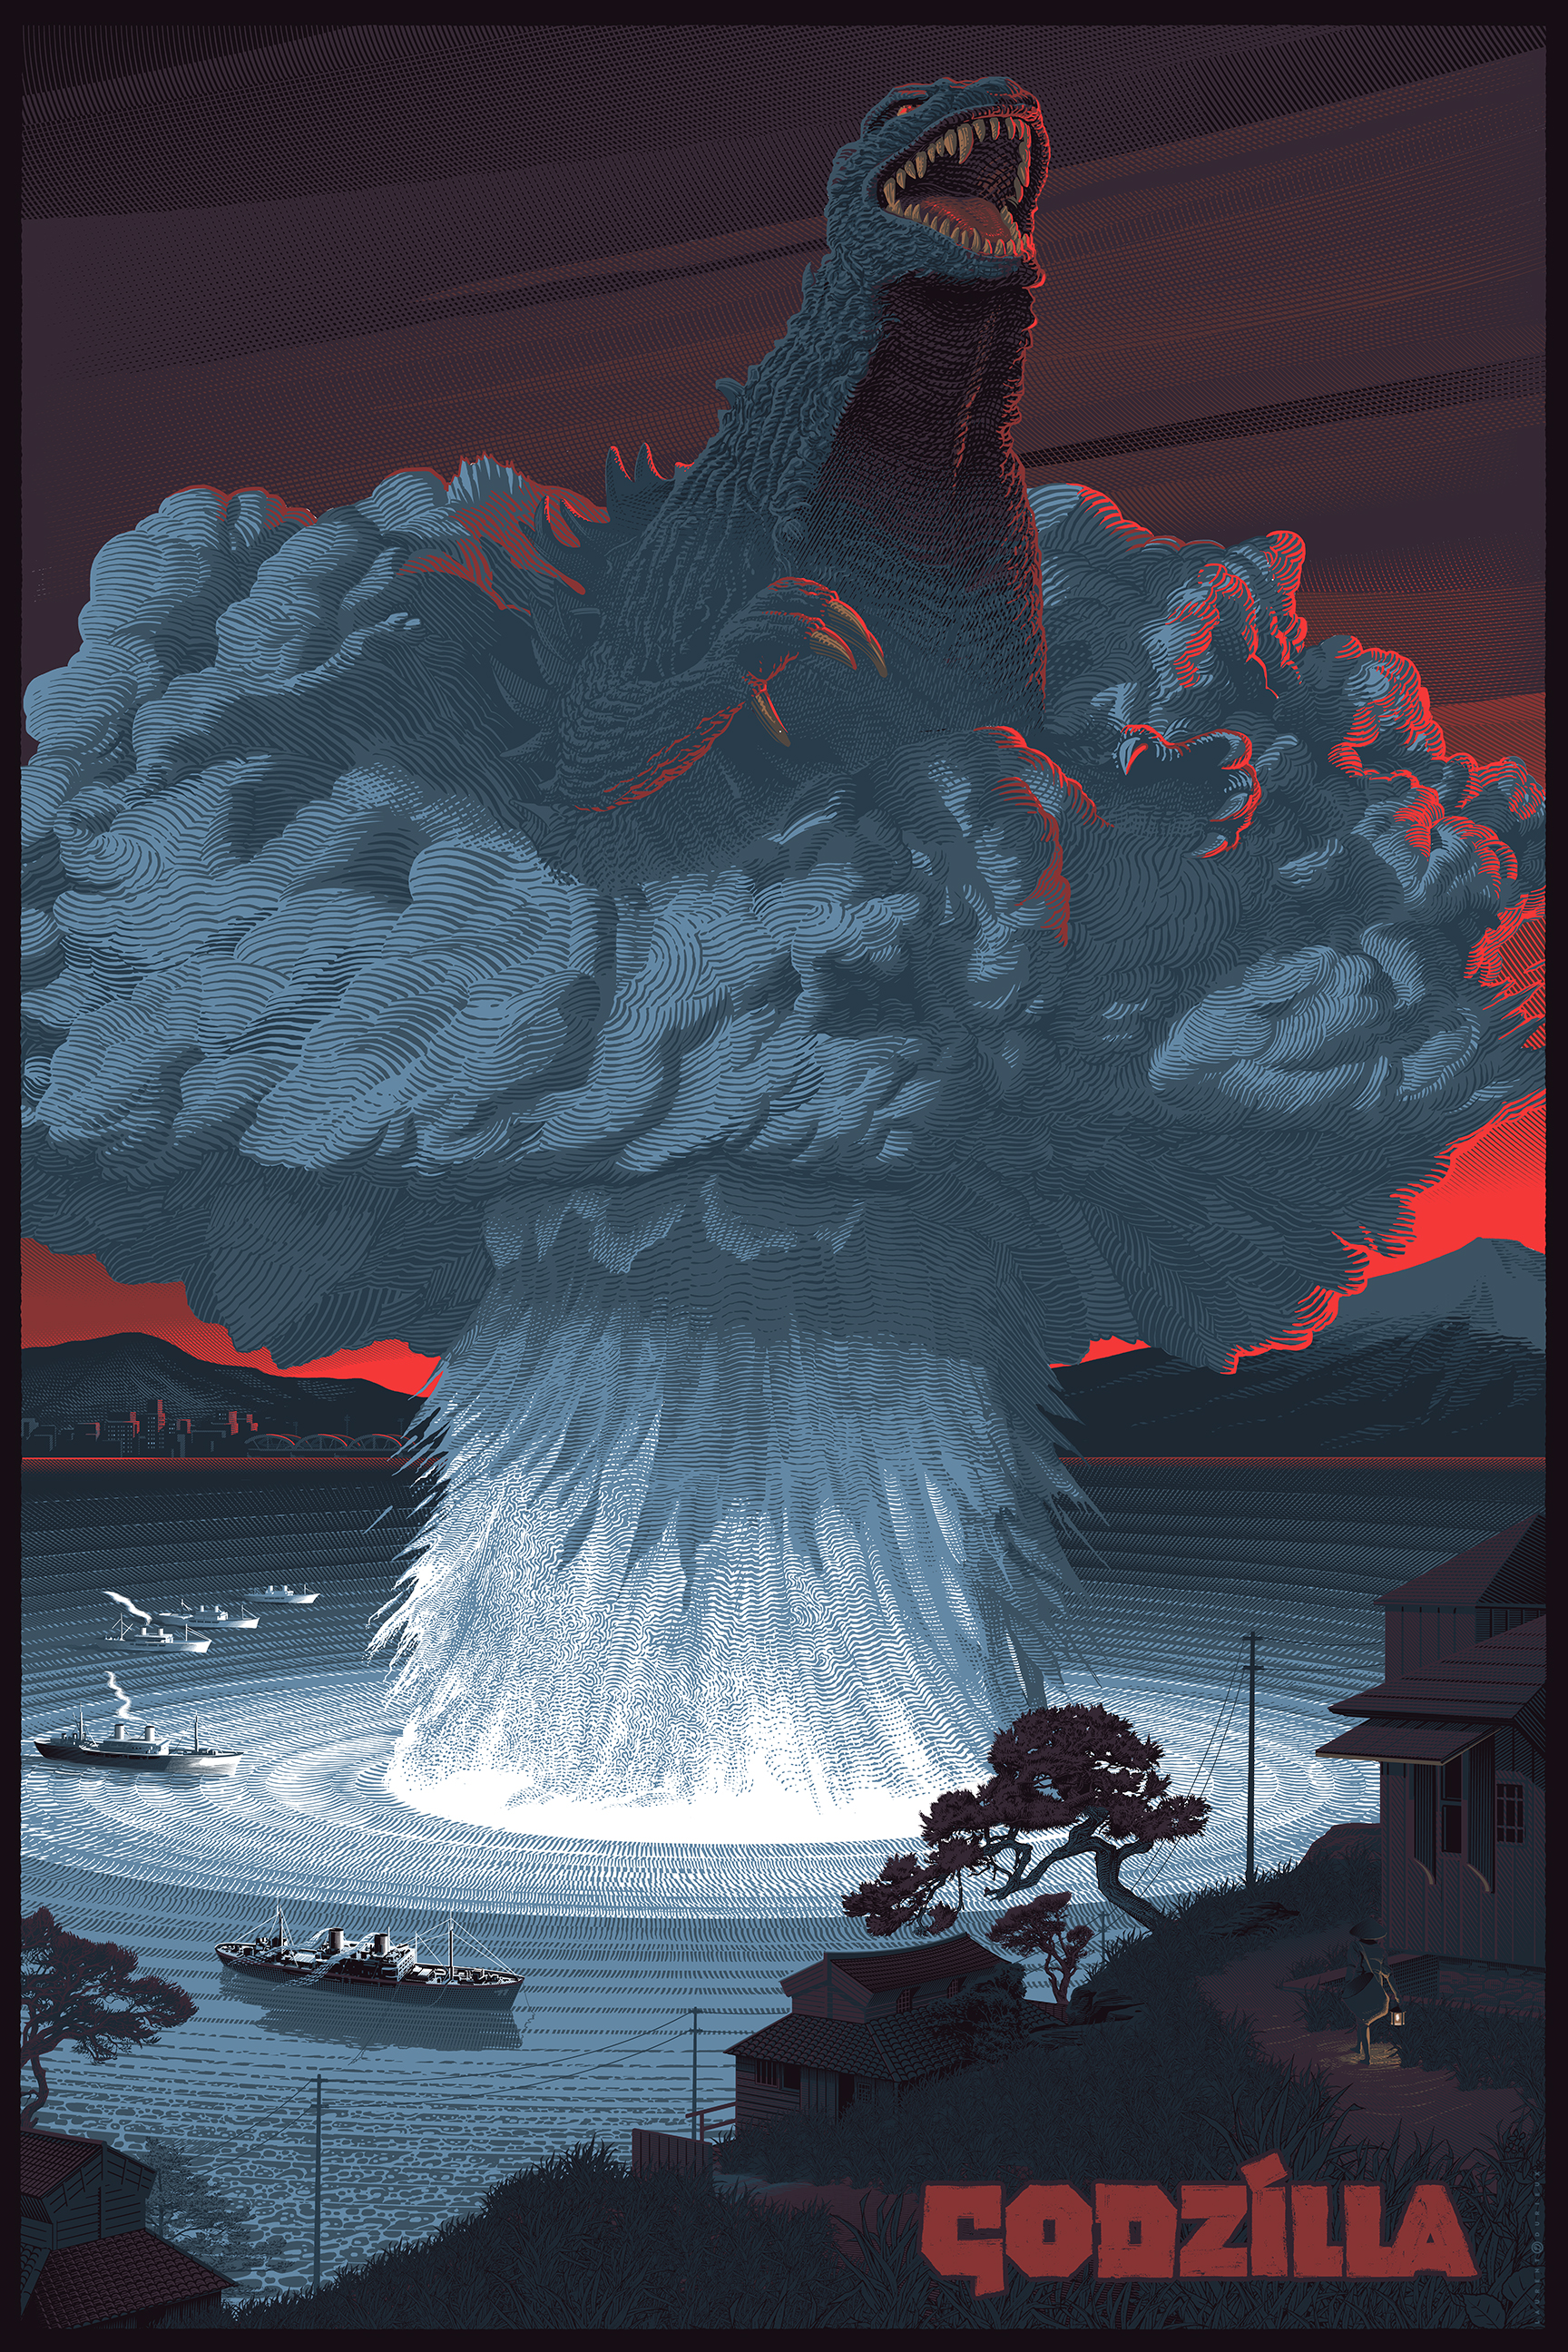 godzilla standard print by laurent durieux 24 x 36 edition of 350 65 godzilla select foil edition of 20 based on std artwork 150 - Godzilla Pictures To Print